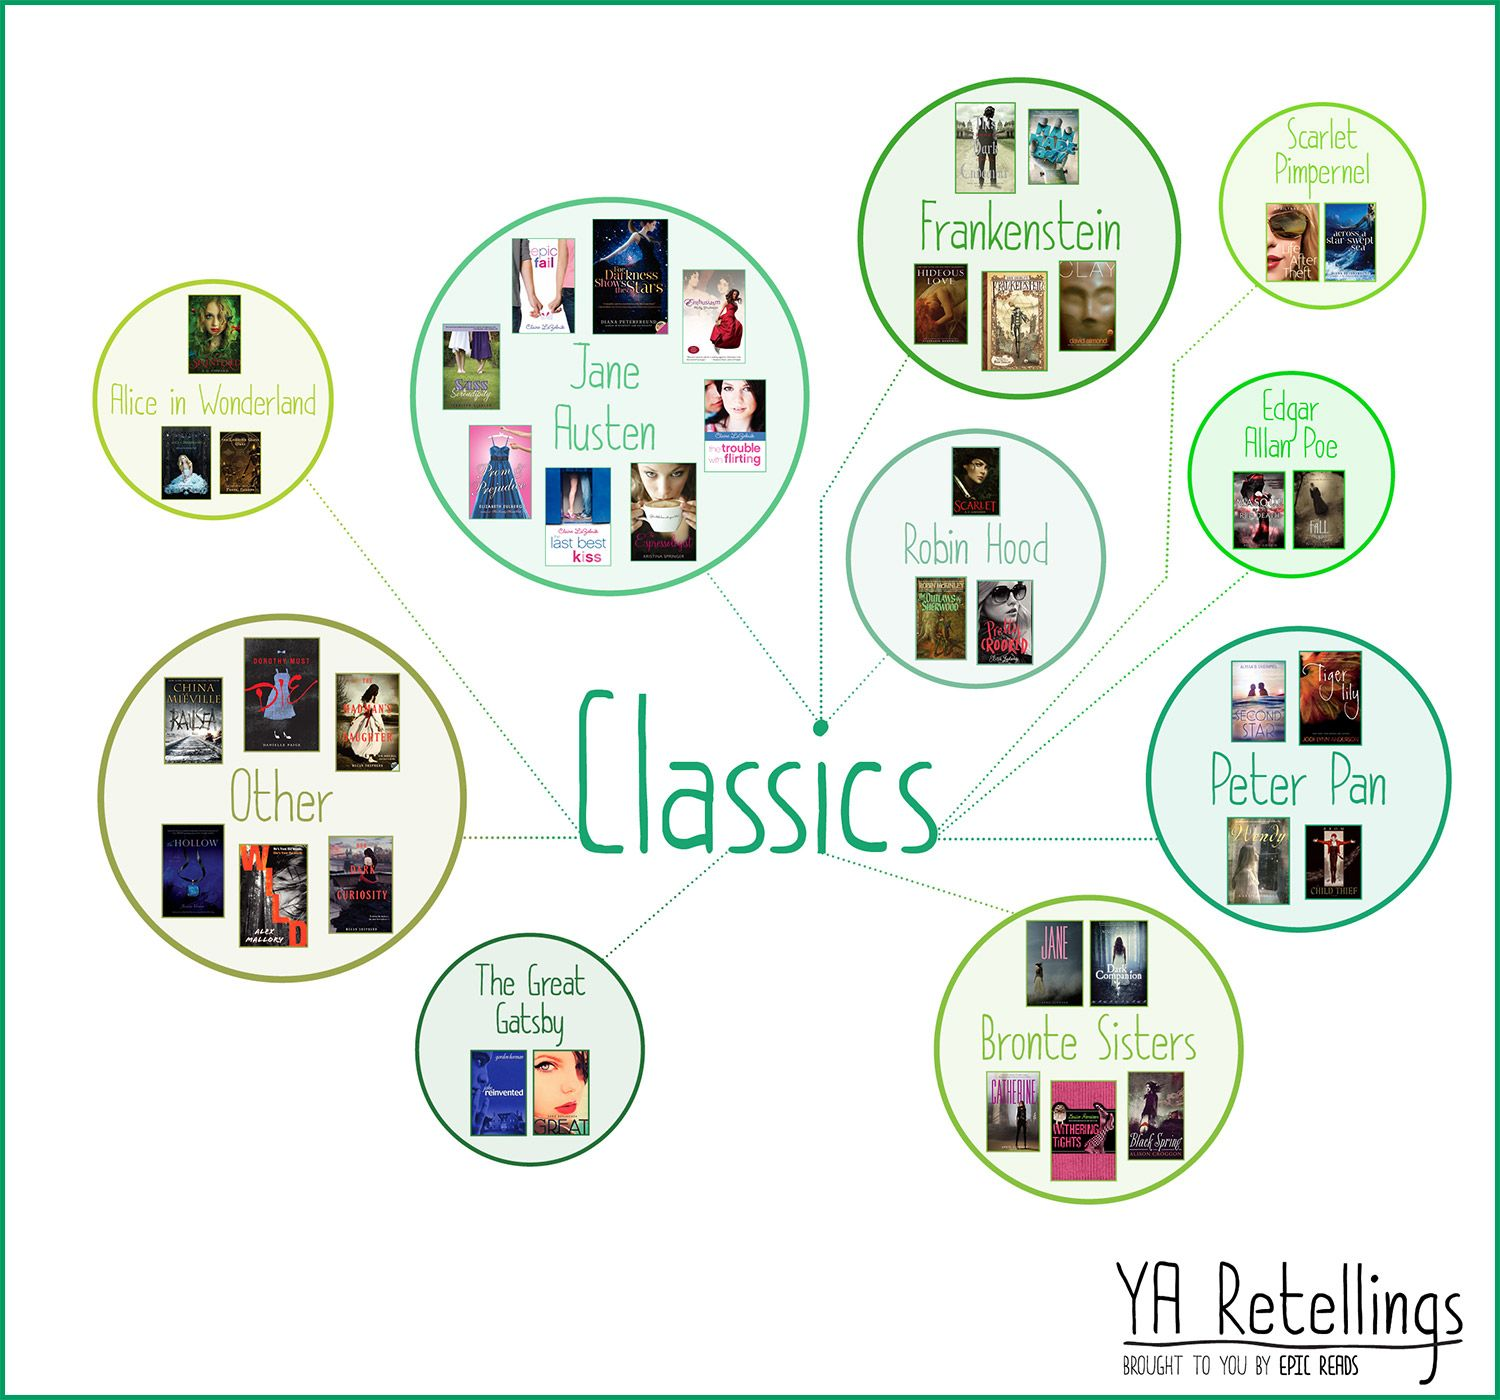 YA retellings based off of classic literature: The Great Gatsby, Peter Pan, Alice in Wonderland...